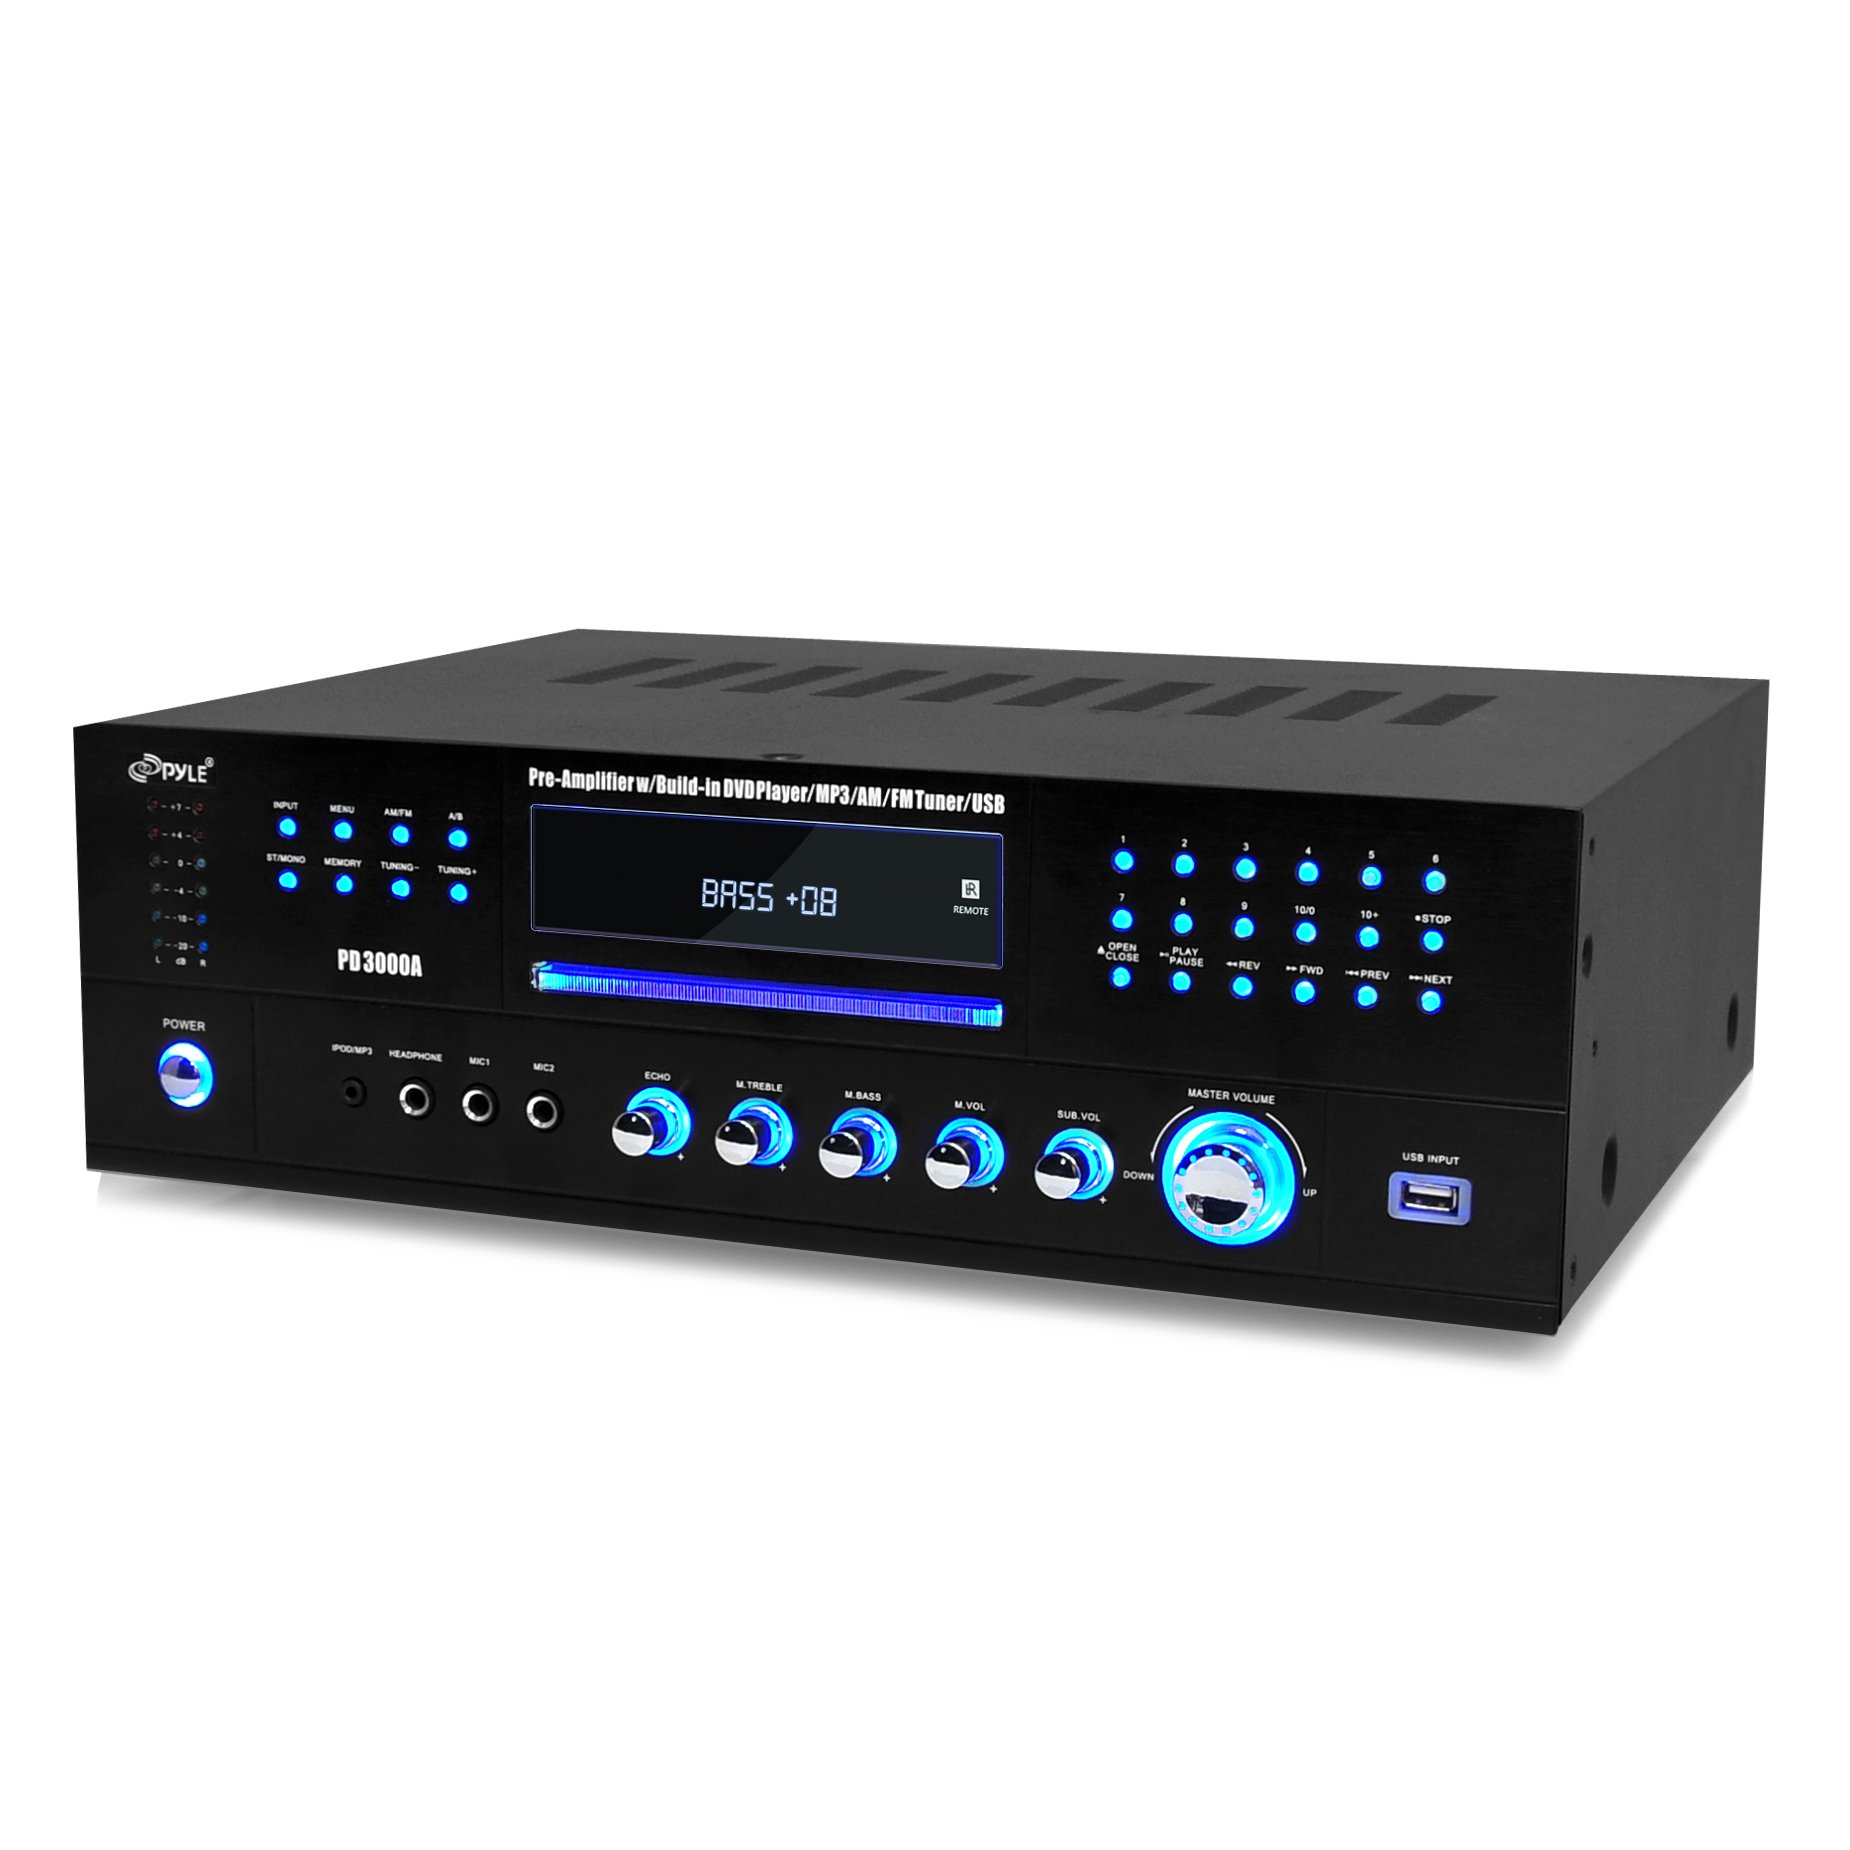 Pyle Home Theater Preamplifier Receiver, Audio/Video System, CD/DVD Player, AM/FM Radio, MP3/USB Reader, 3000 Watt